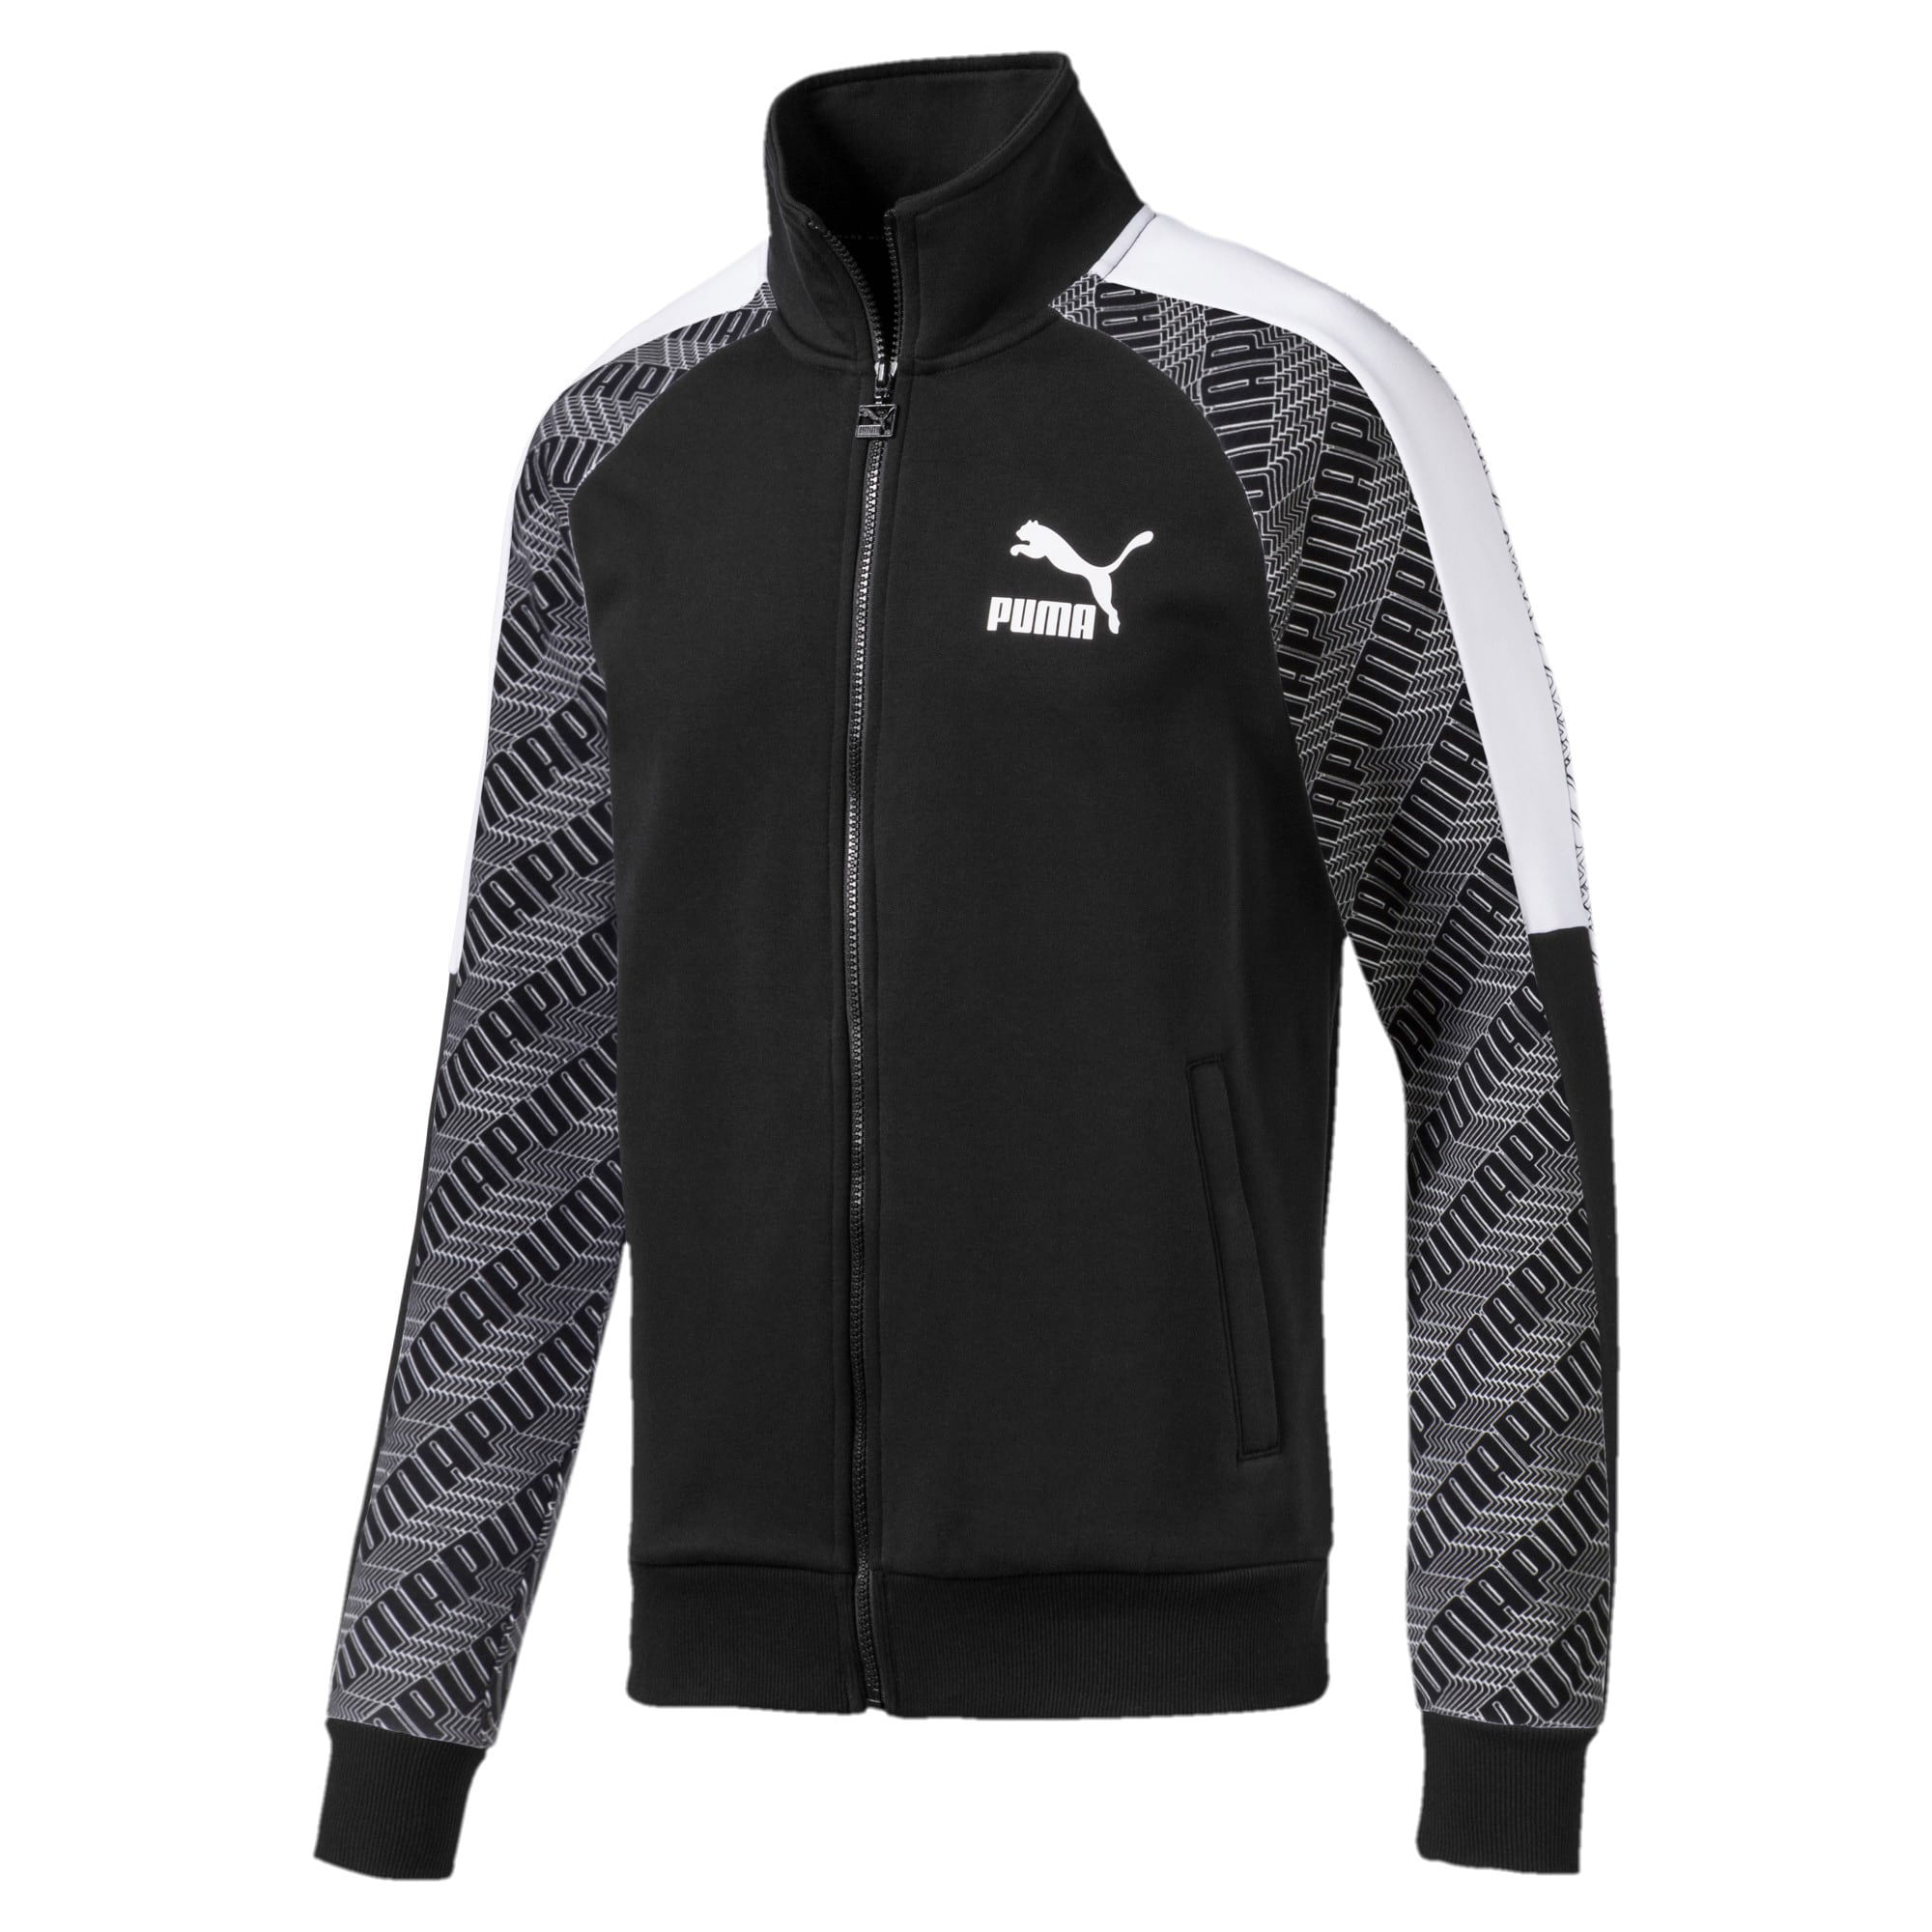 Thumbnail 1 of T7 All-Over Printed Men's Track Jacket, Puma Black-Repeat logo, medium-IND